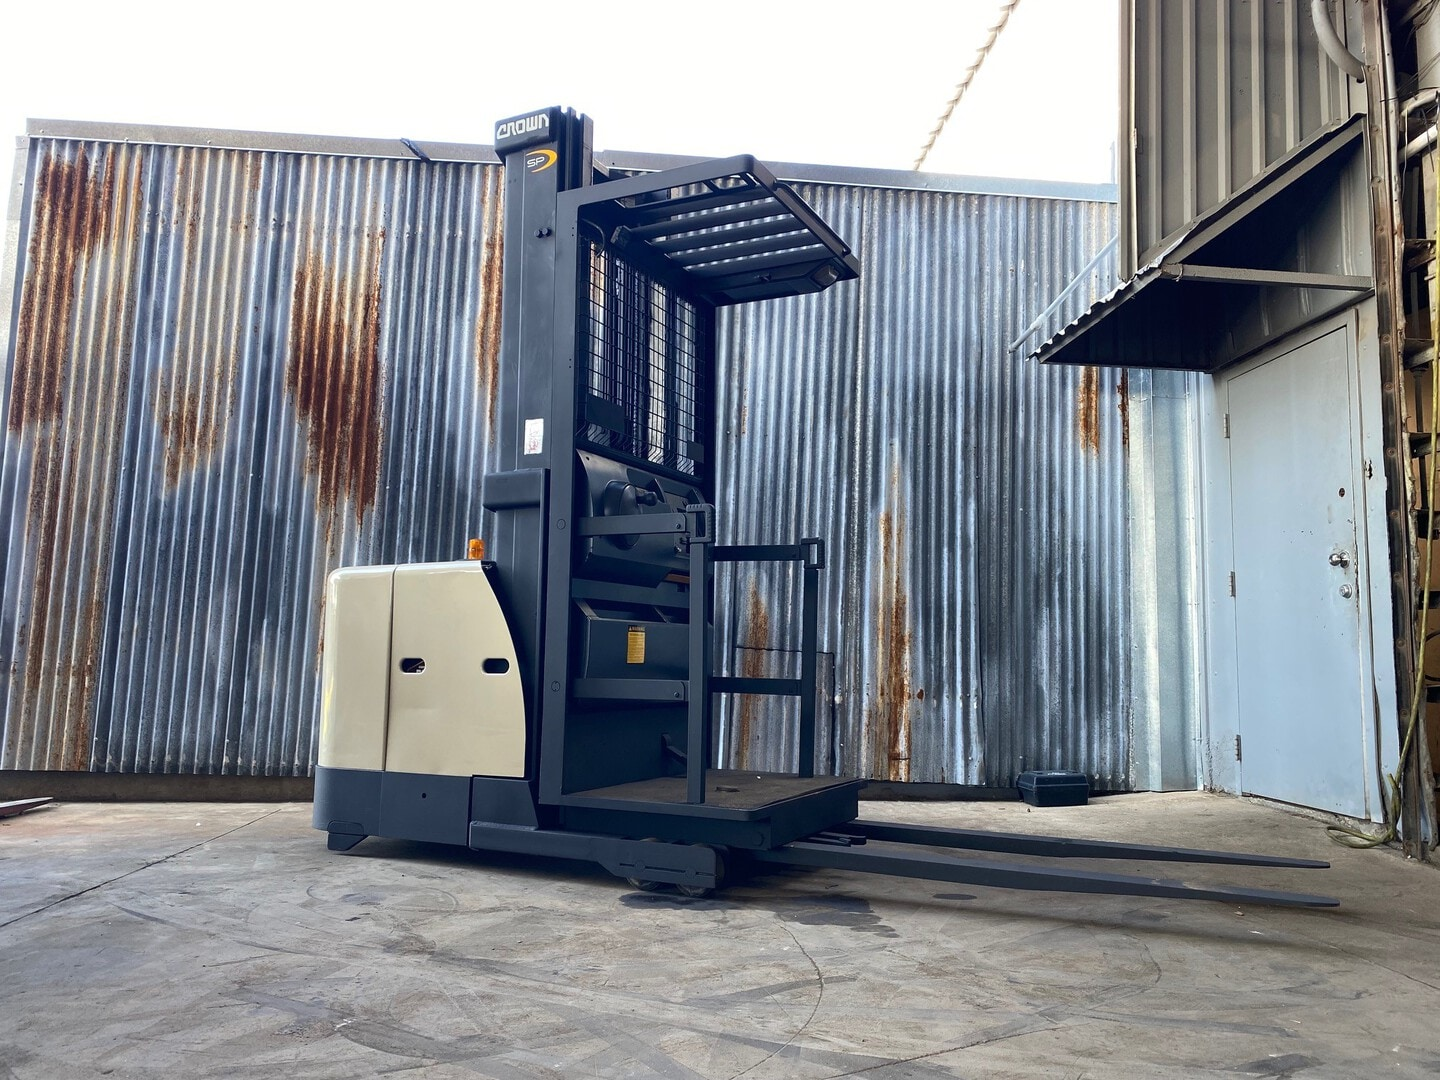 Used, 2003, Crown, SP3220-30, Forklifts / Lift Trucks